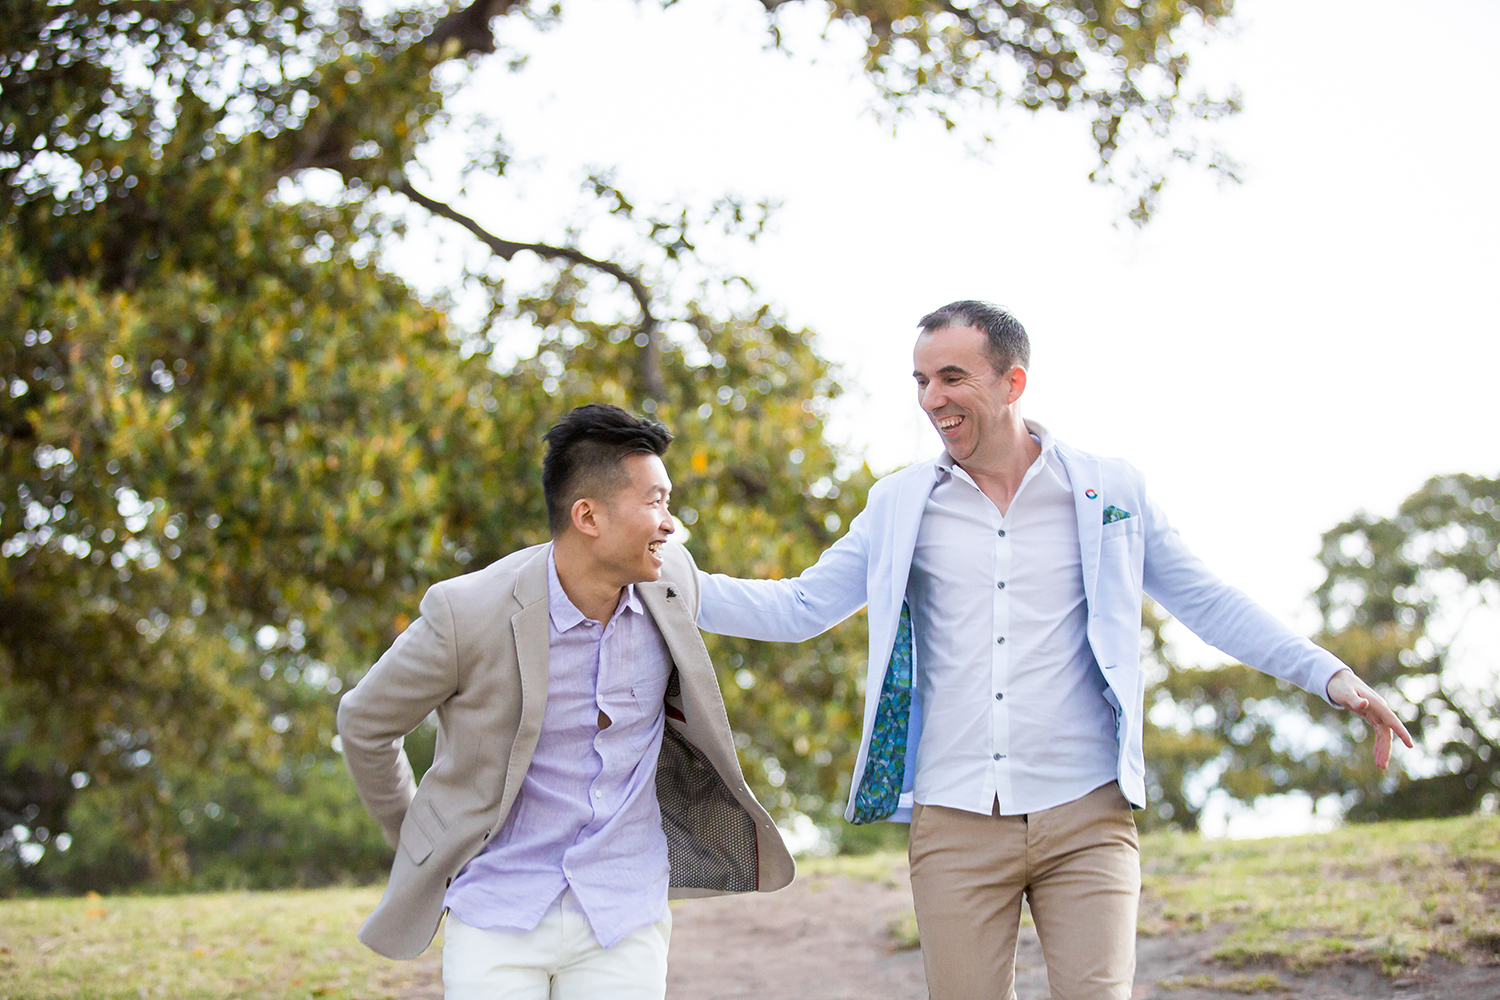 Sydney Gay Wedding Photographer - Jennifer Lam Photography (27).jpg